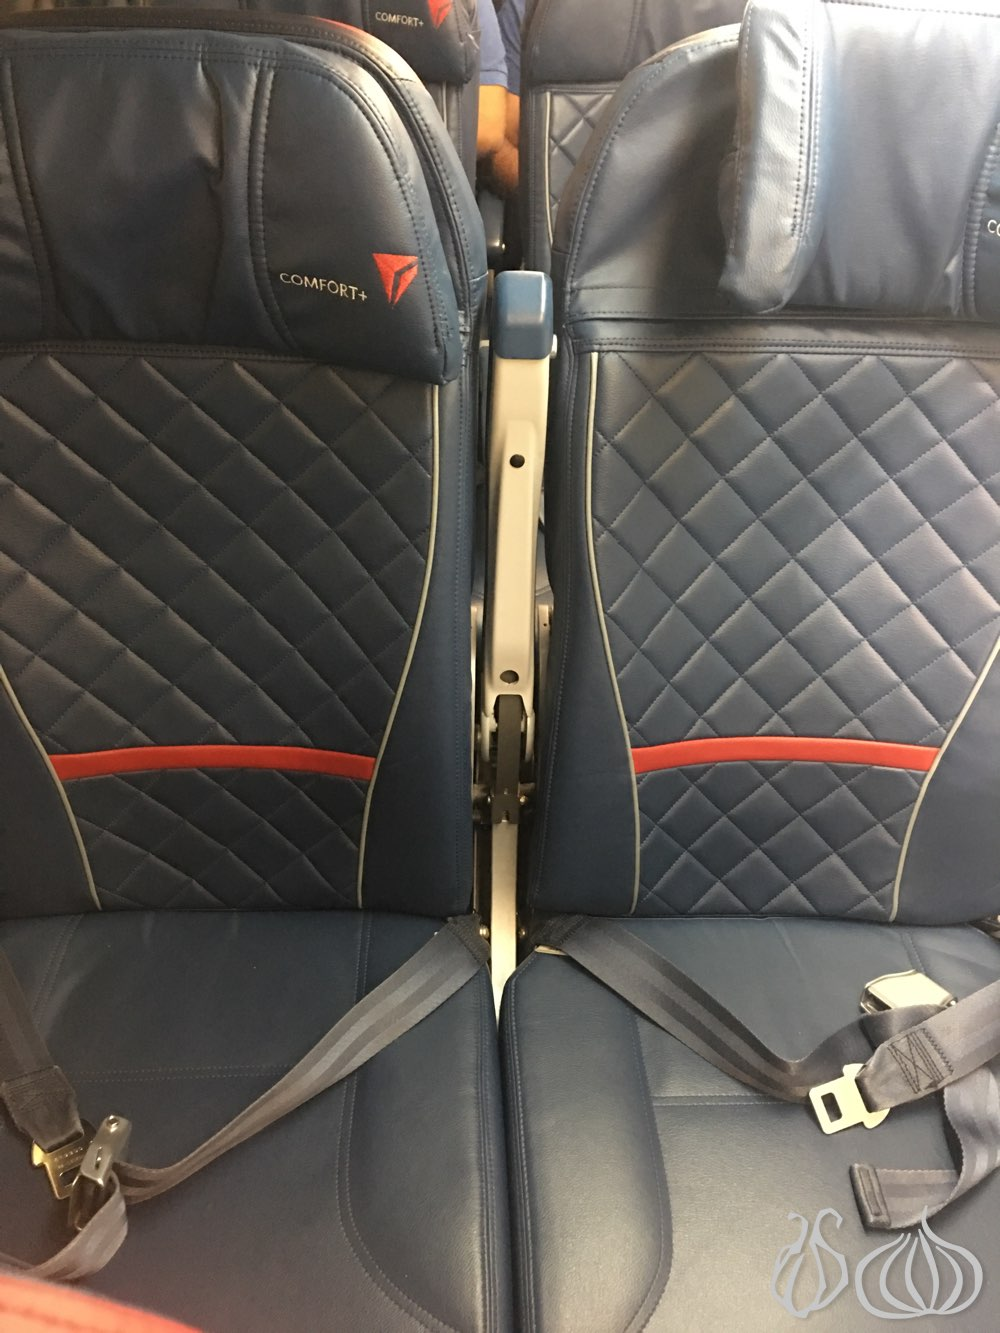 delta-airlines42016-10-17-10-21-32